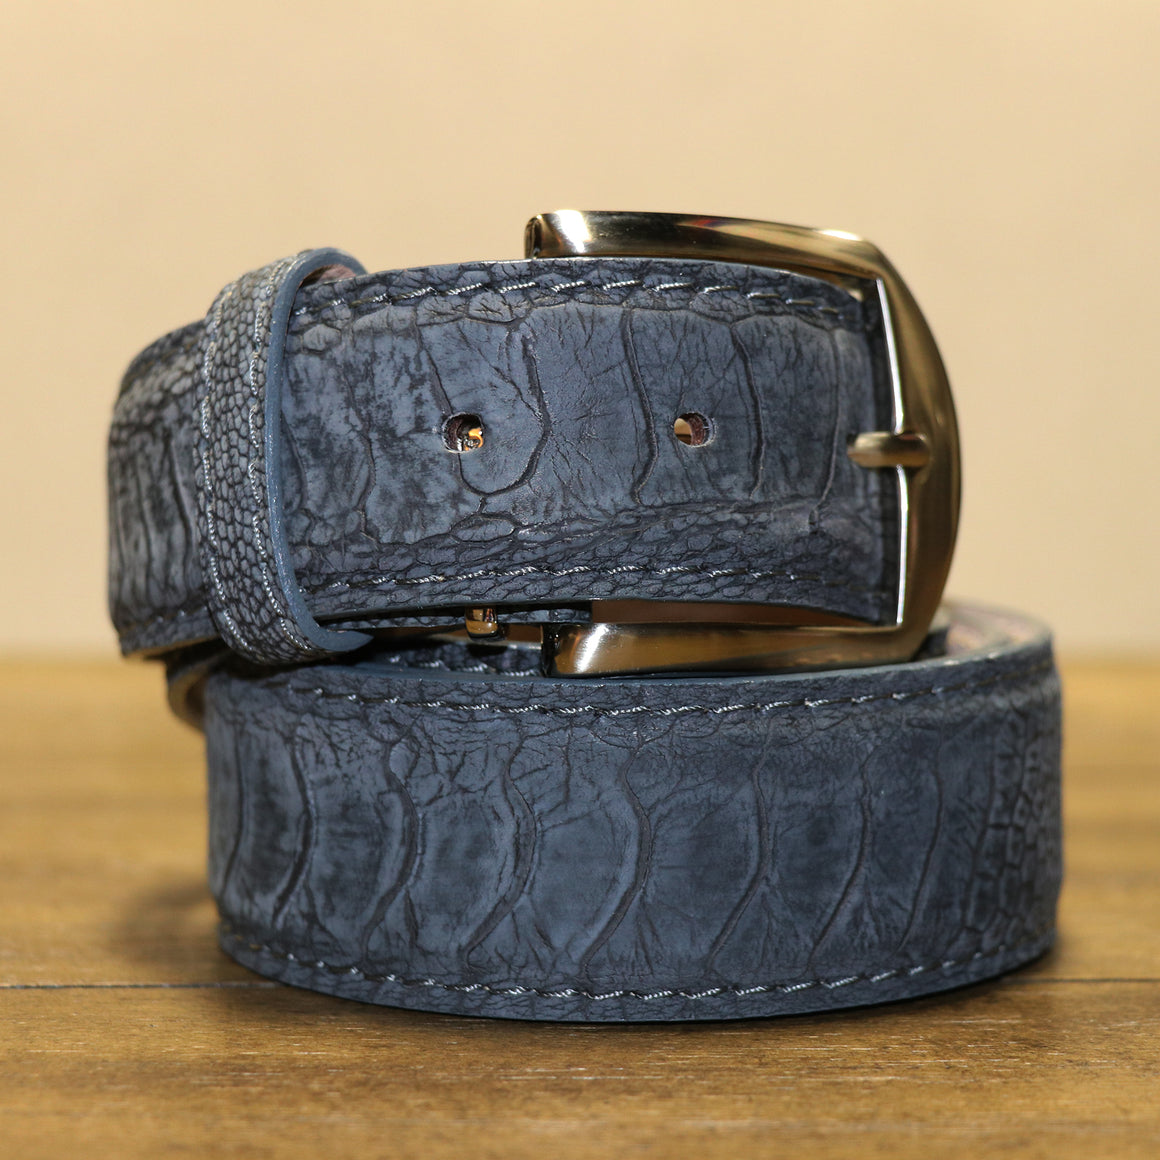 Ostrich Leg Belt - Denim Blue